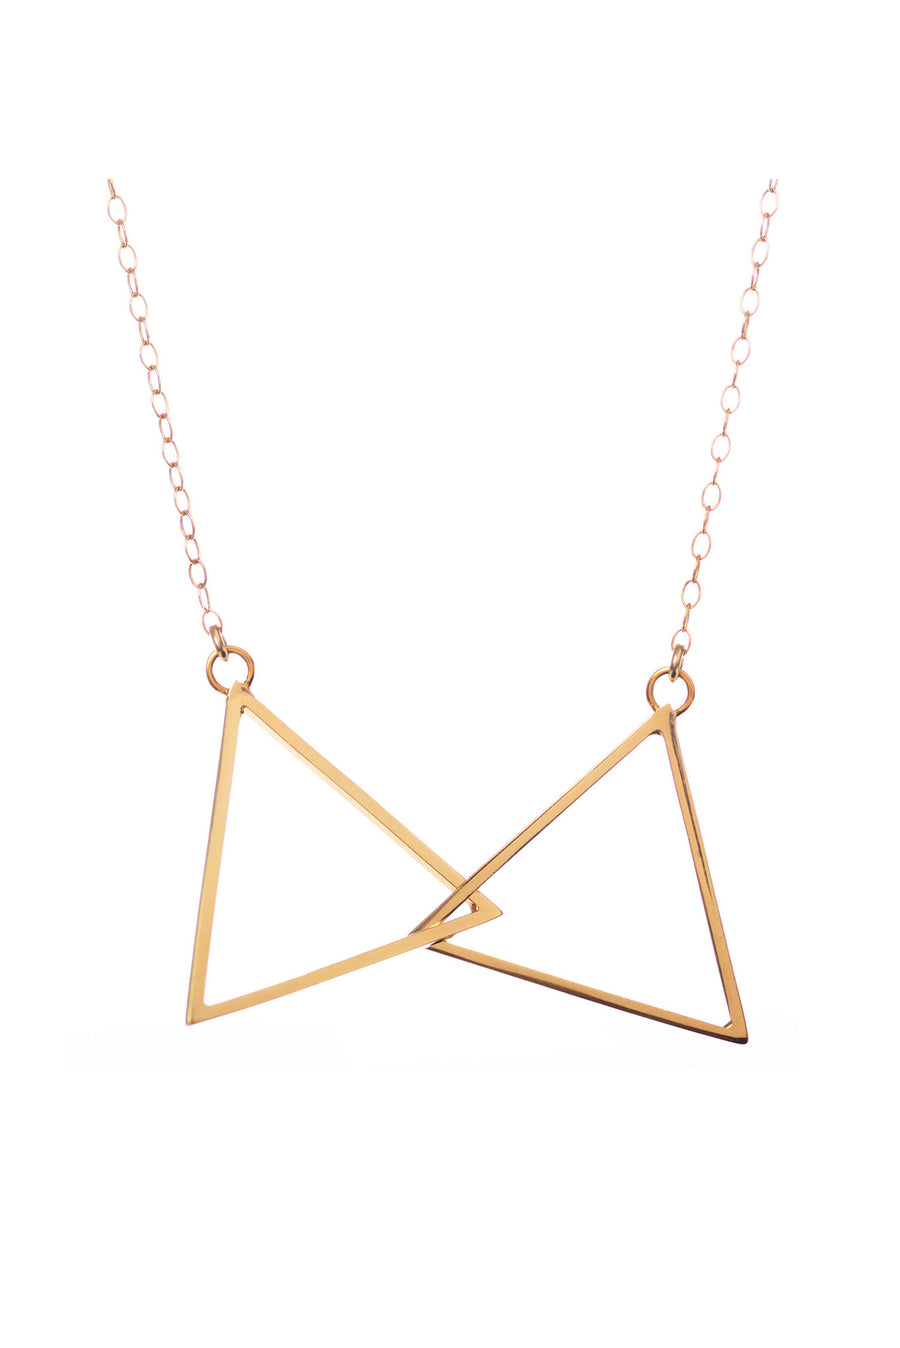 Connected, Gold Necklace